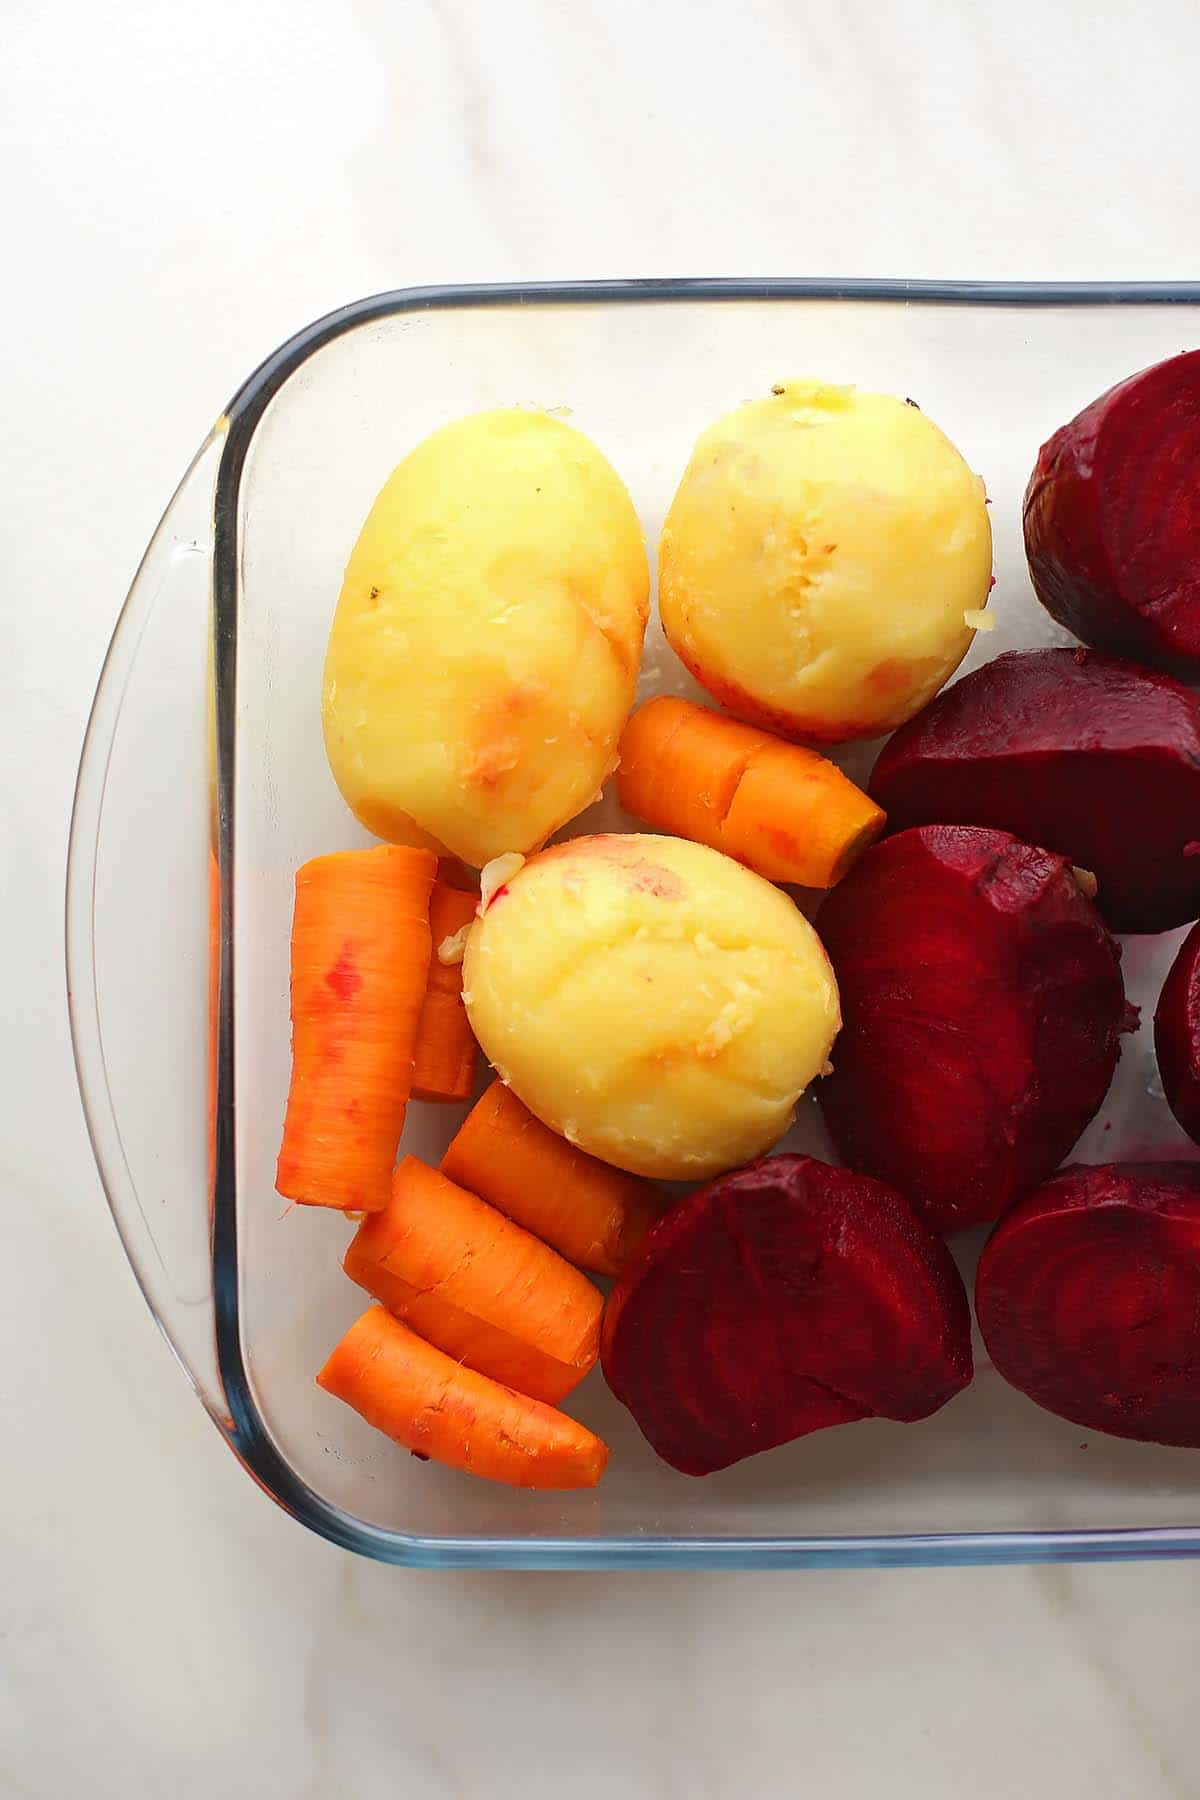 boiled vegetables for potato salad with beets